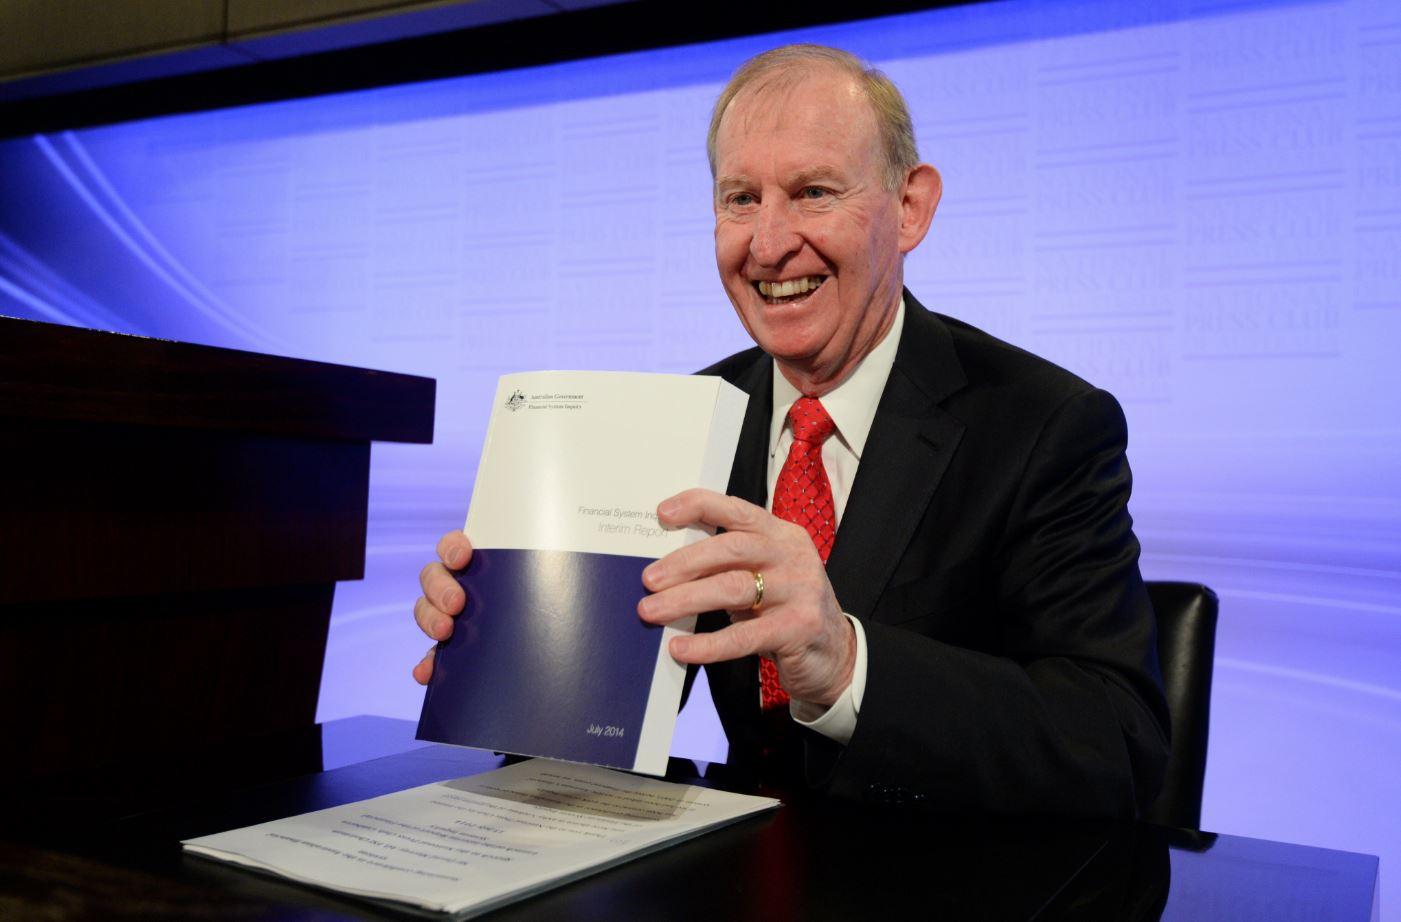 Chair of the Financial Systems Inquiry, David Murray, presents the Financial System Inquiry Interim Report at the National Press Club in Canberra, Tuesday, July 15, 2014.